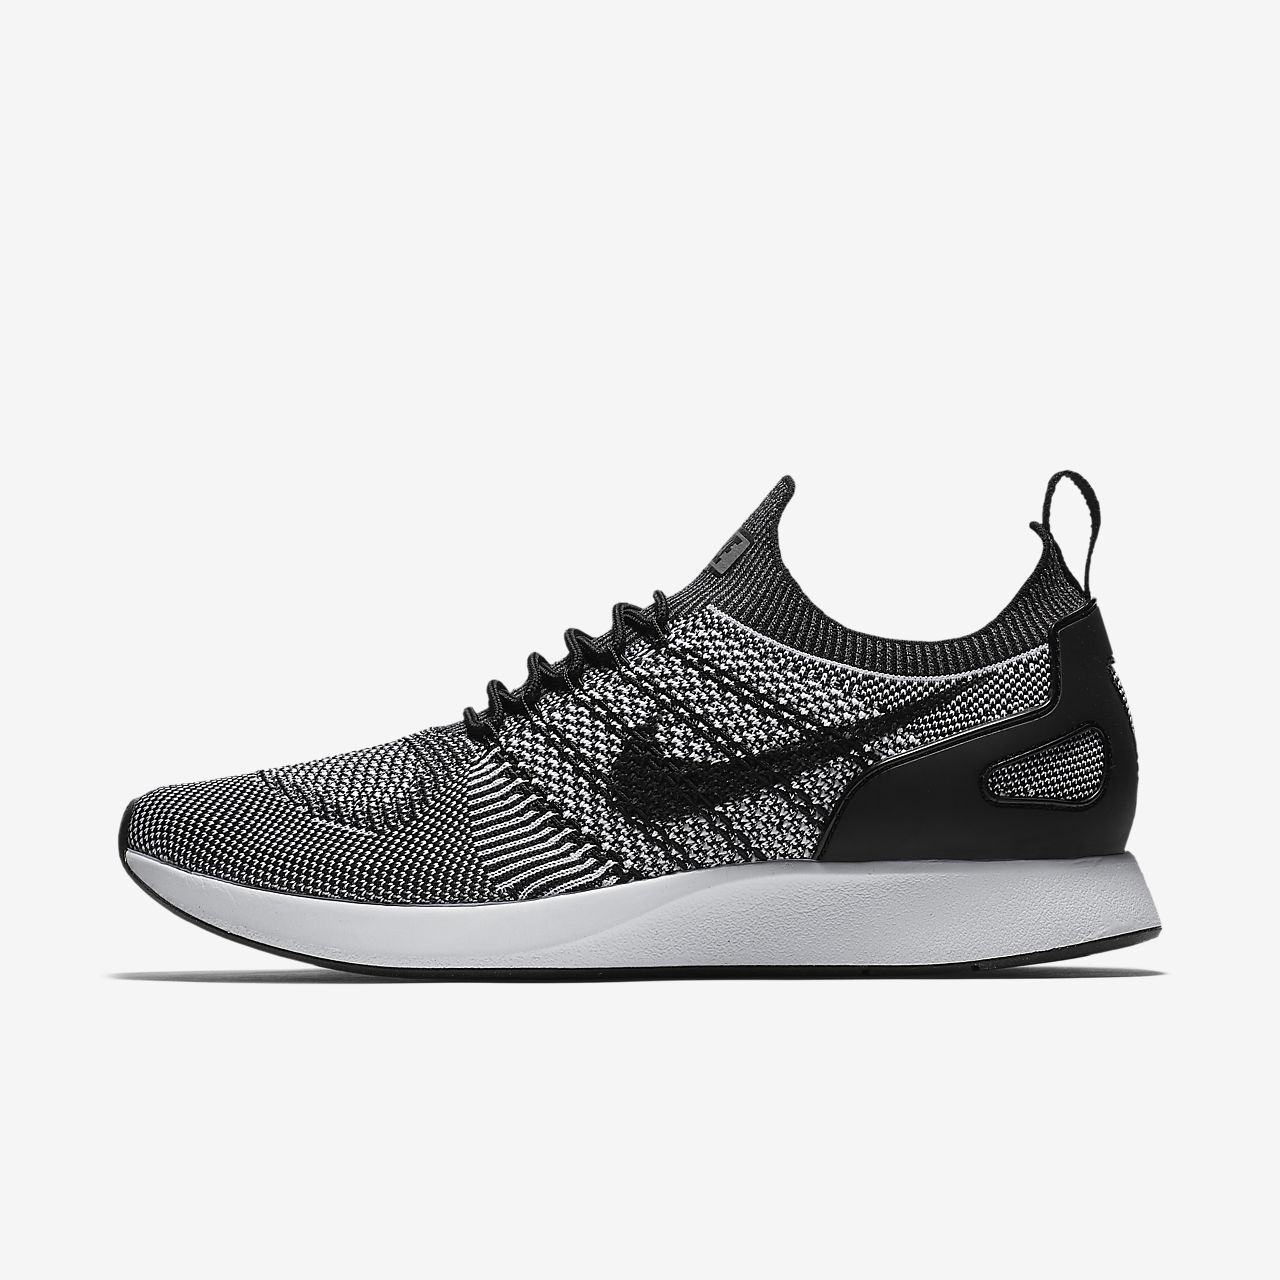 f5e53fc6ac48 Low Resolution Nike Air Zoom Mariah Flyknit Racer Men s Shoe Nike Air Zoom  Mariah Flyknit Racer Men s Shoe